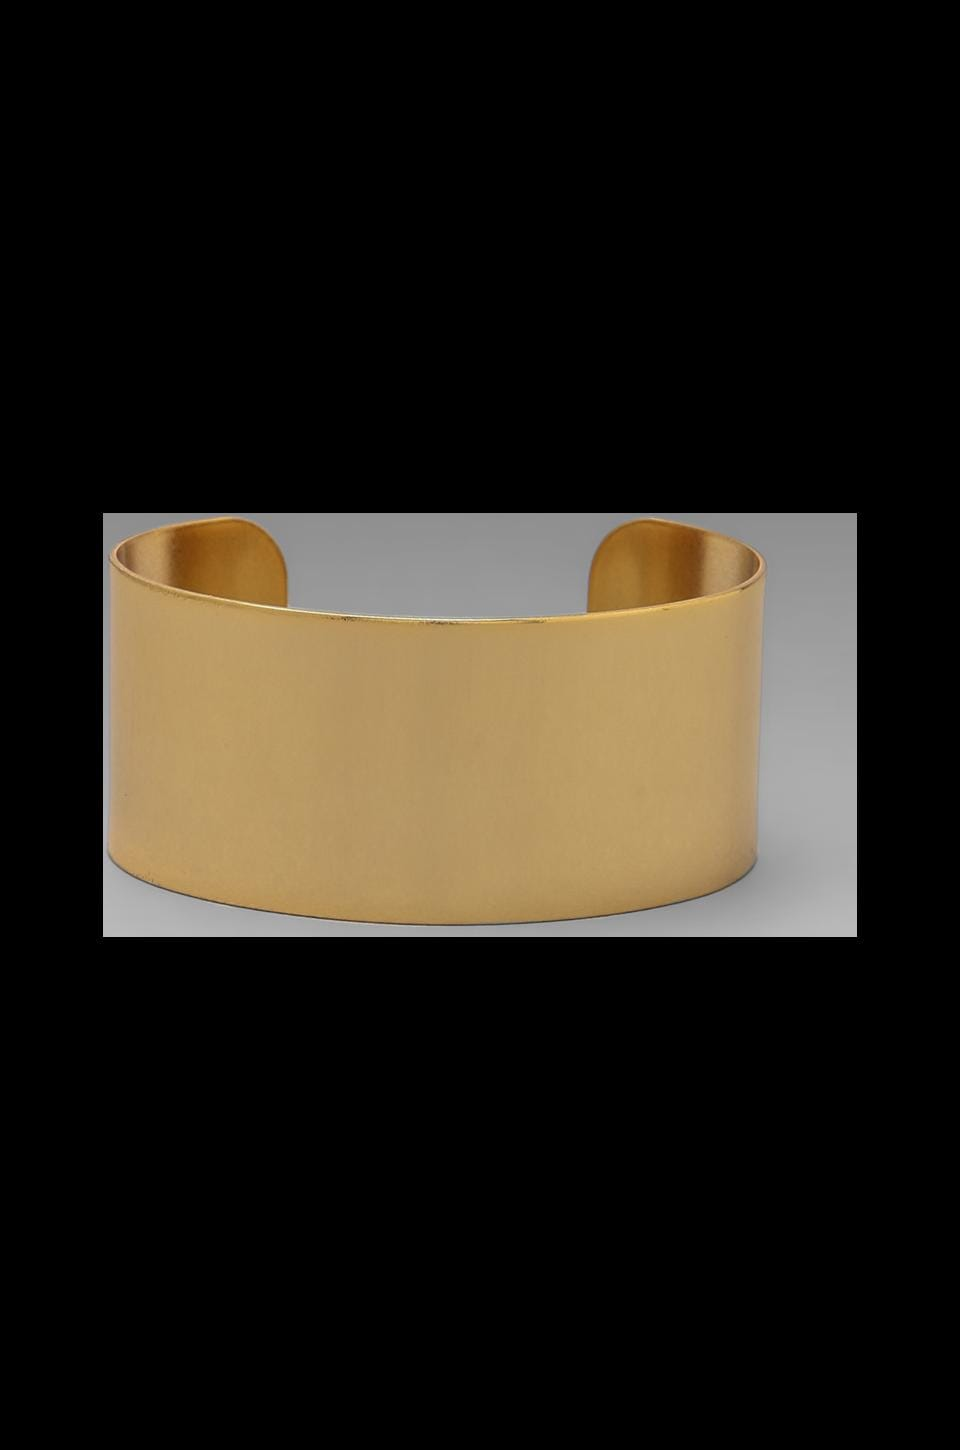 Luv AJ The Plain Cuff- Short in 24 Kt Gold